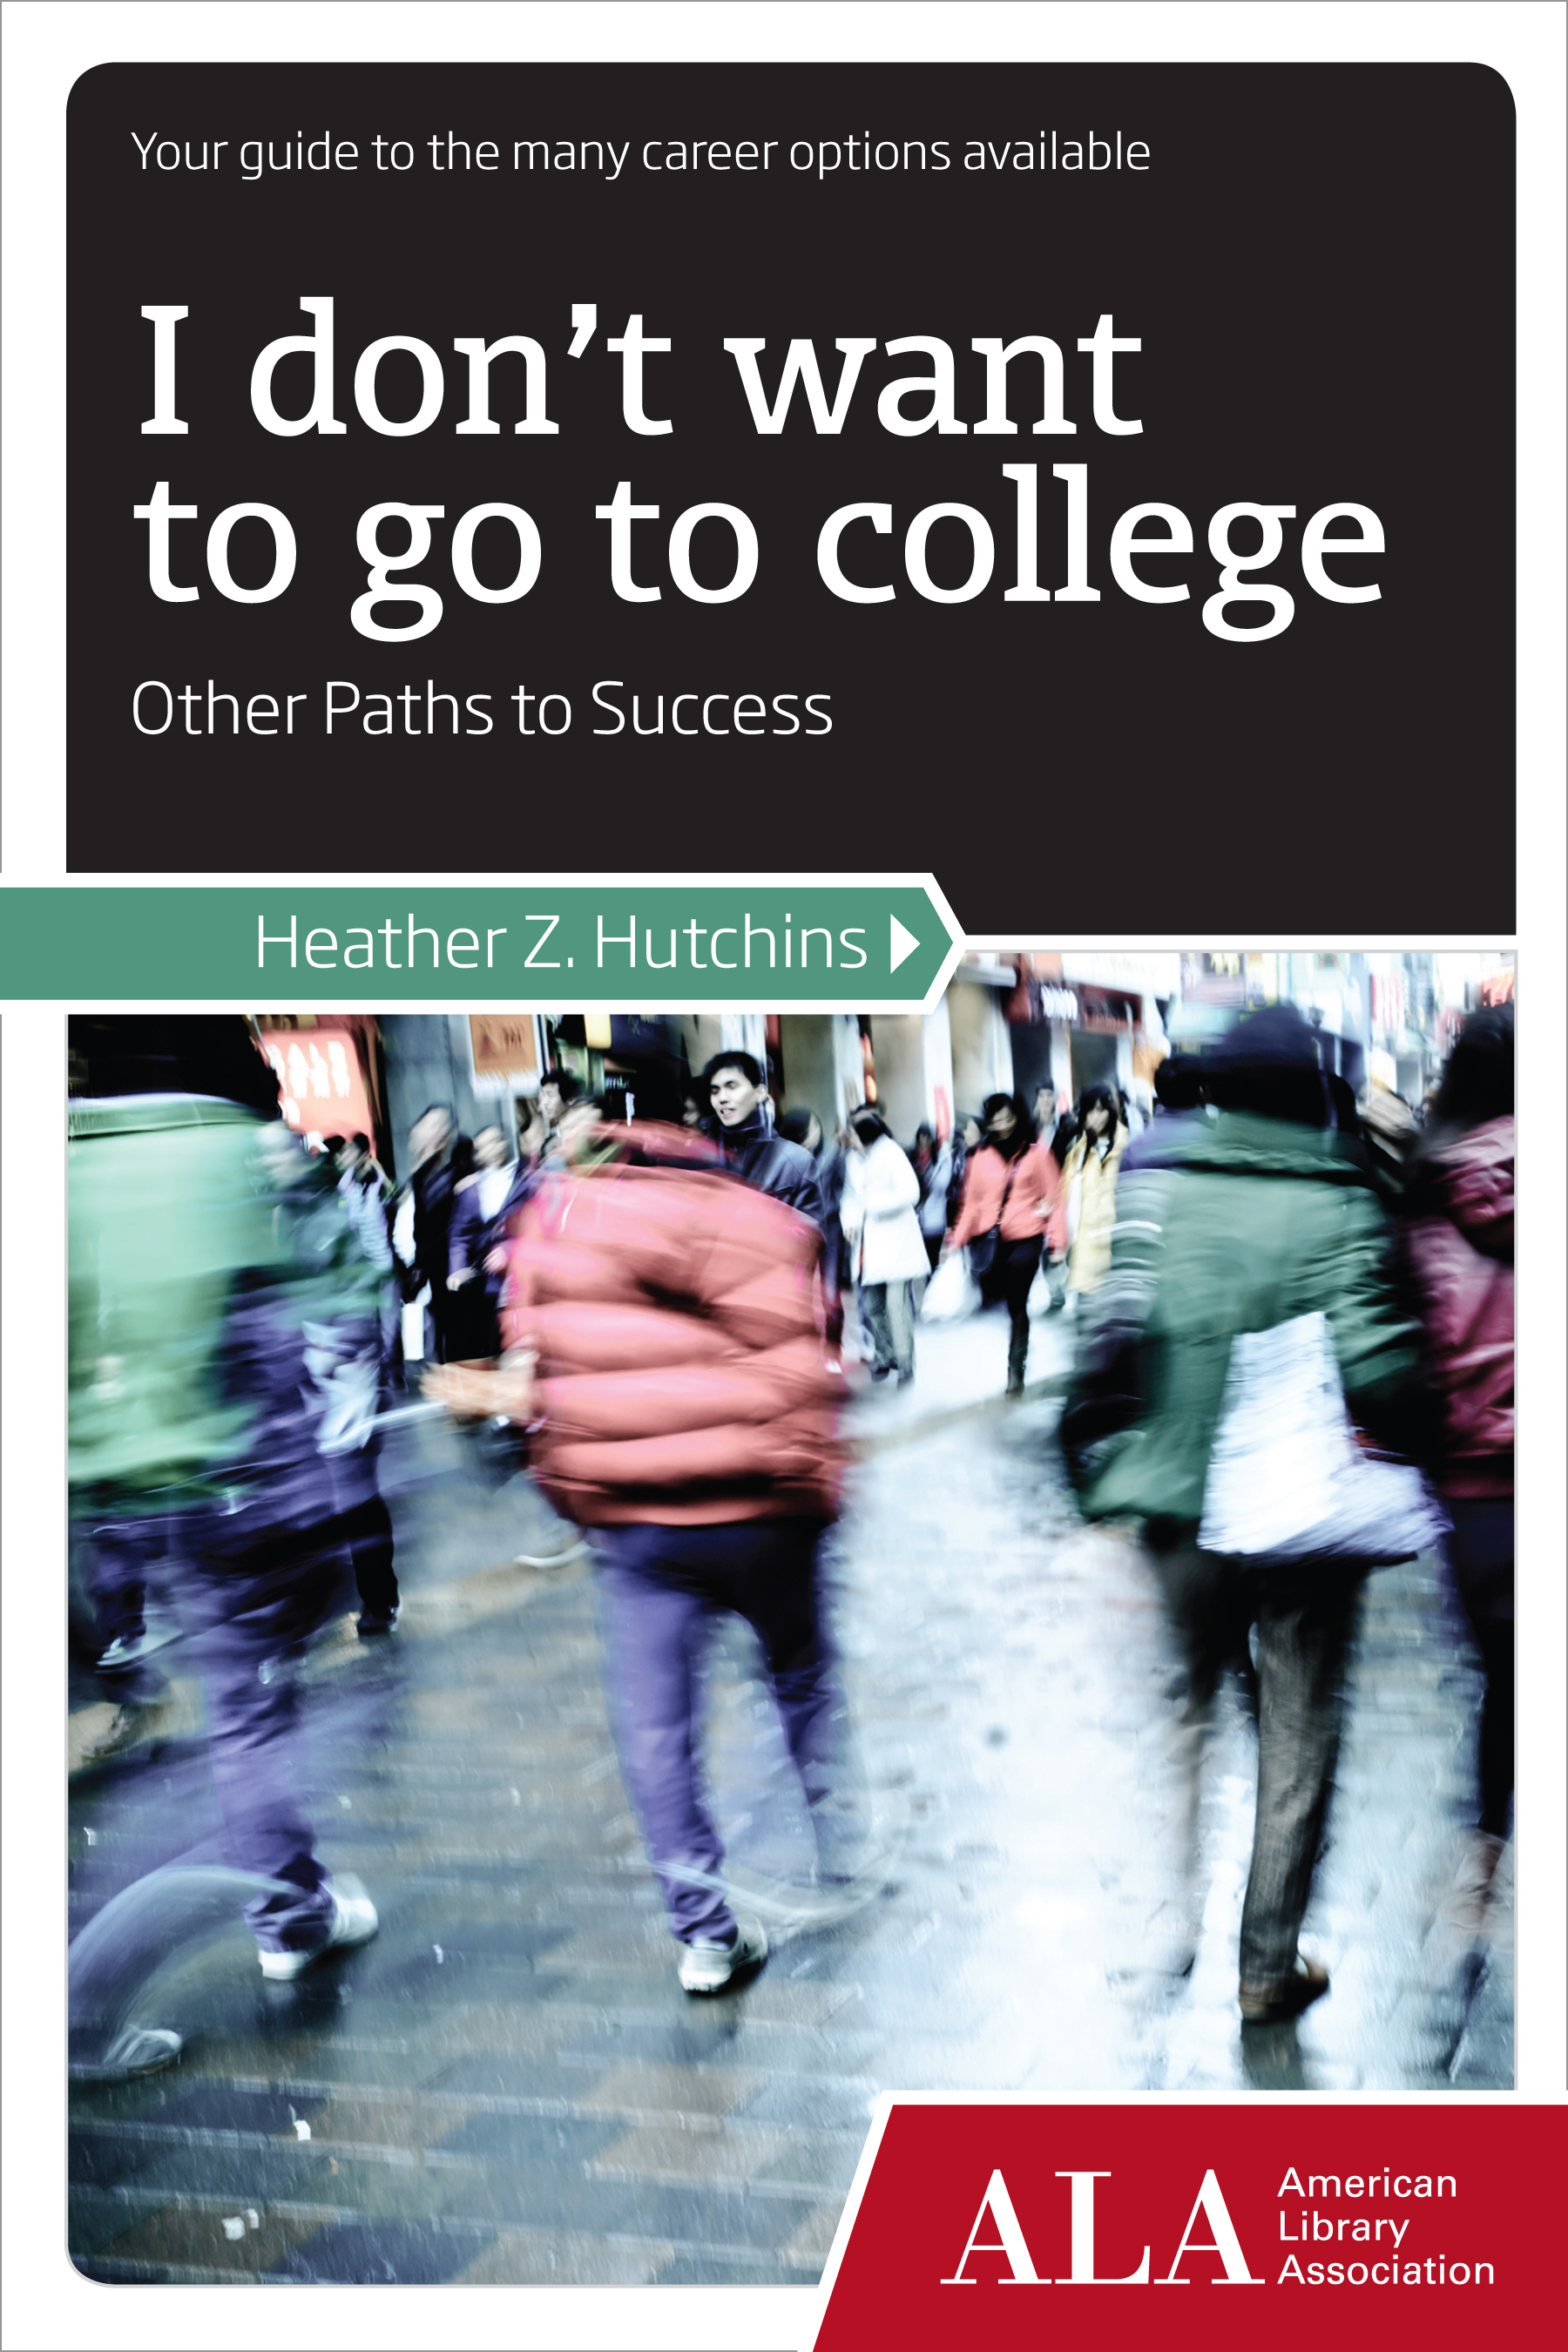 alternatives to a four year college degree news and press center i don t want to go to college other paths to success